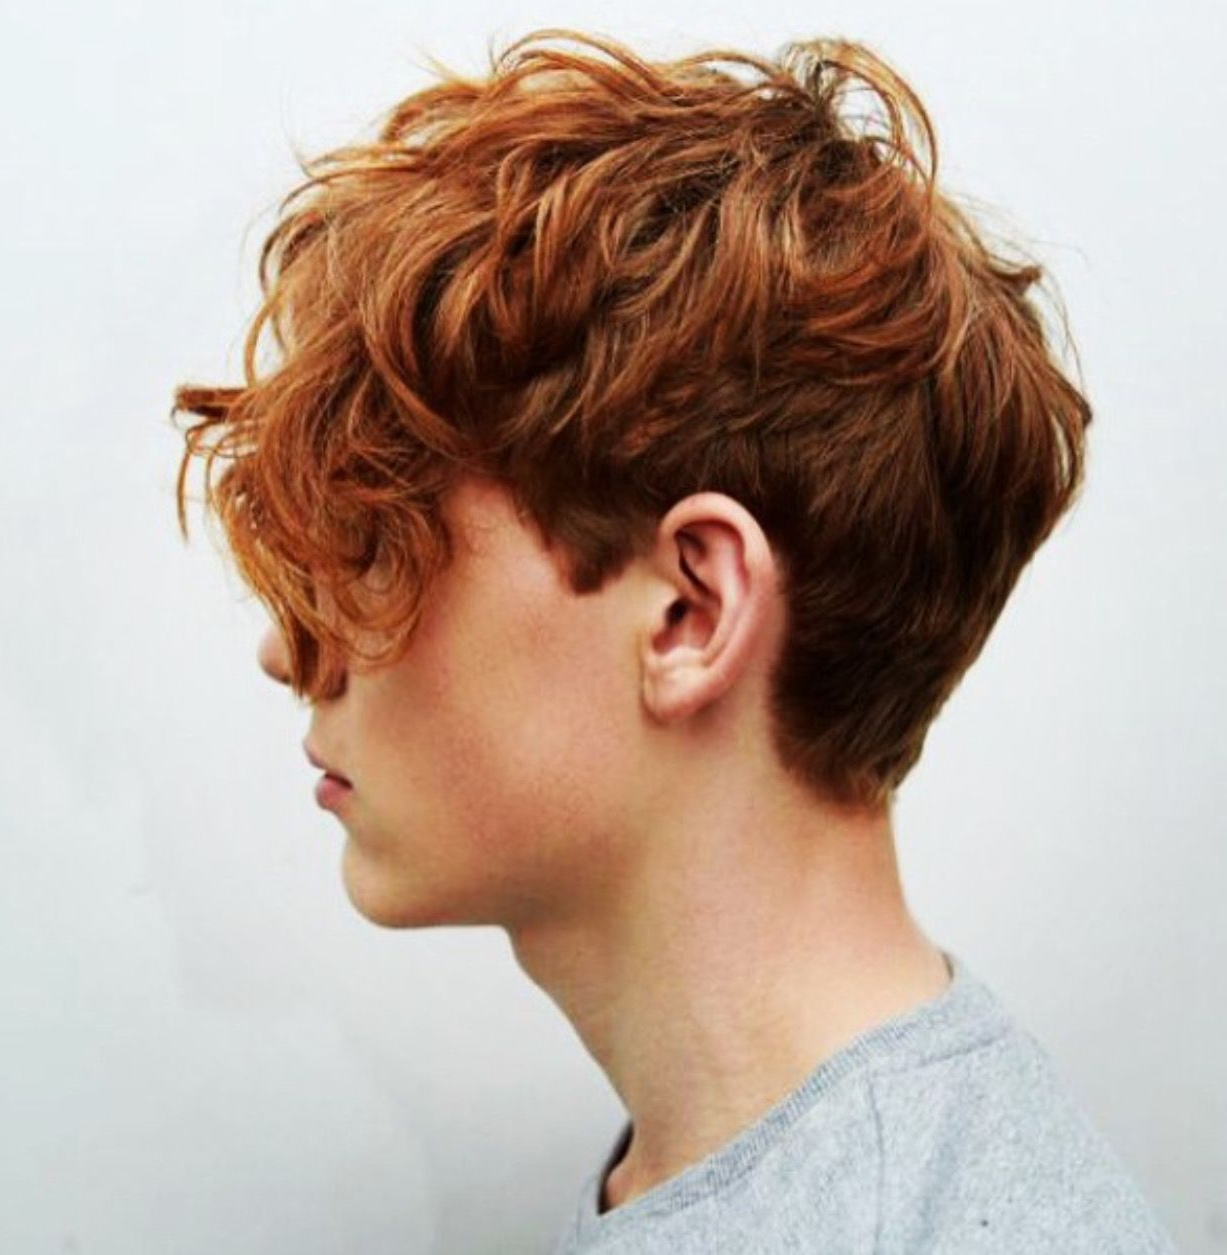 Beau Hair (Ginger) | Beau Churchill In 2018 | Pinterest | Hair Inside Tapered Brown Pixie Hairstyles With Ginger Curls (View 13 of 20)